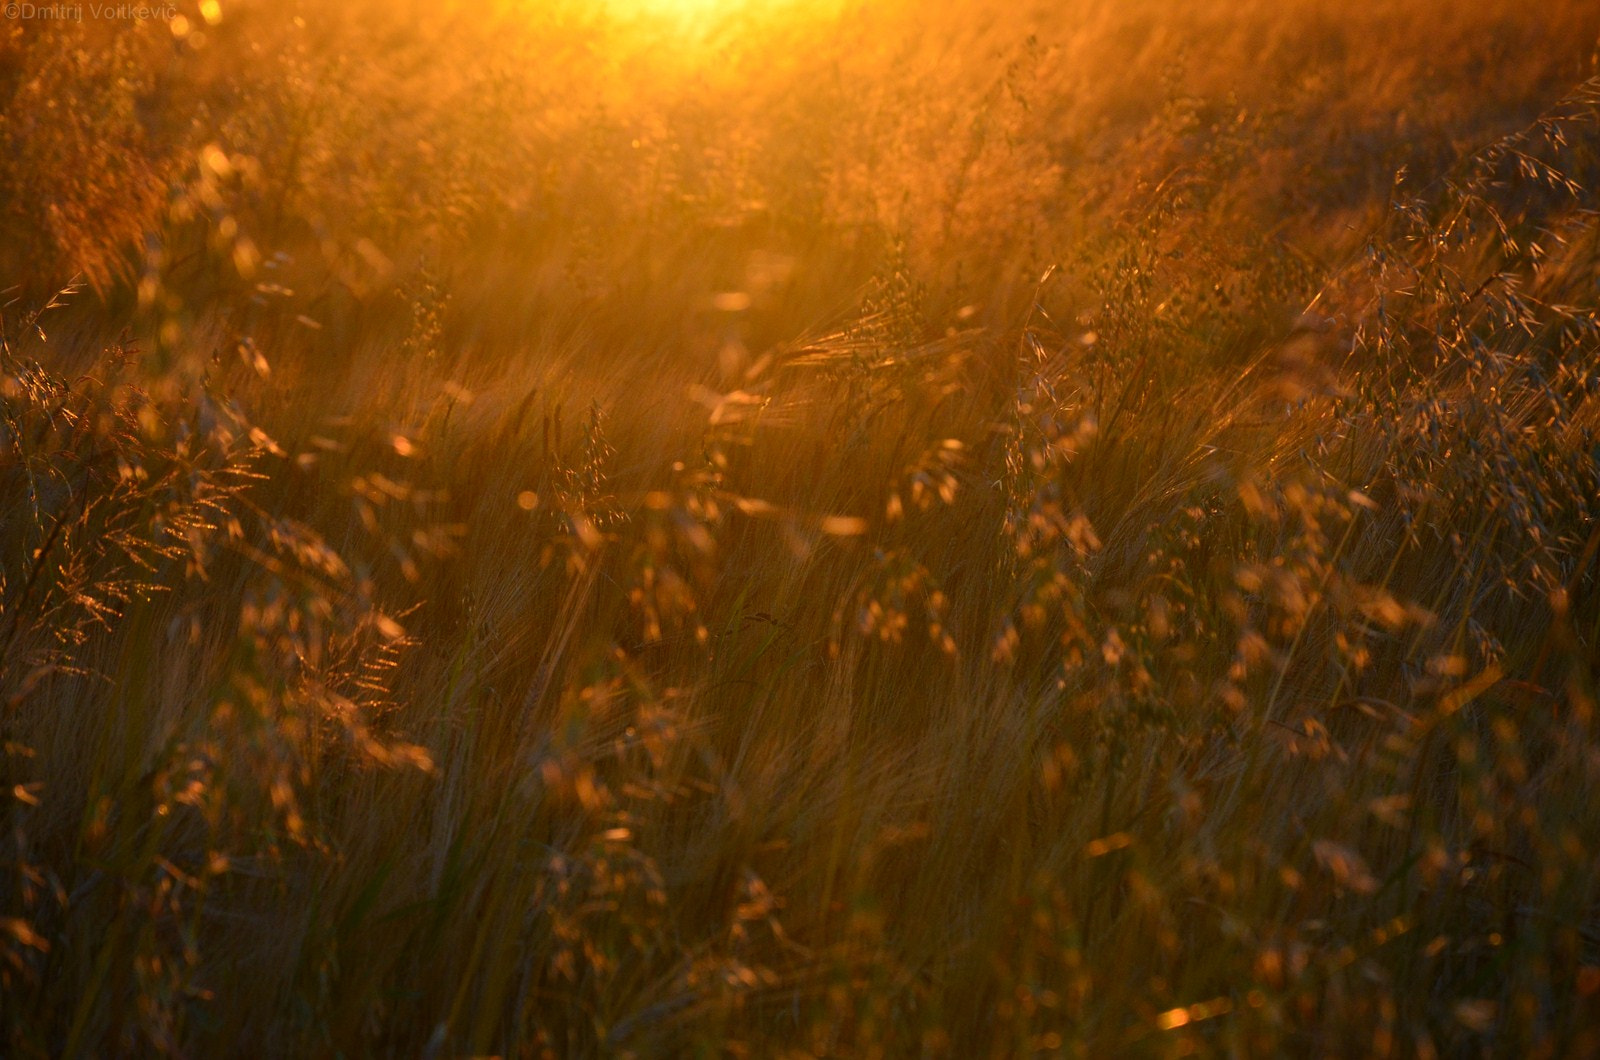 Photograph Evening field by Dmitry Voitkevich on 500px